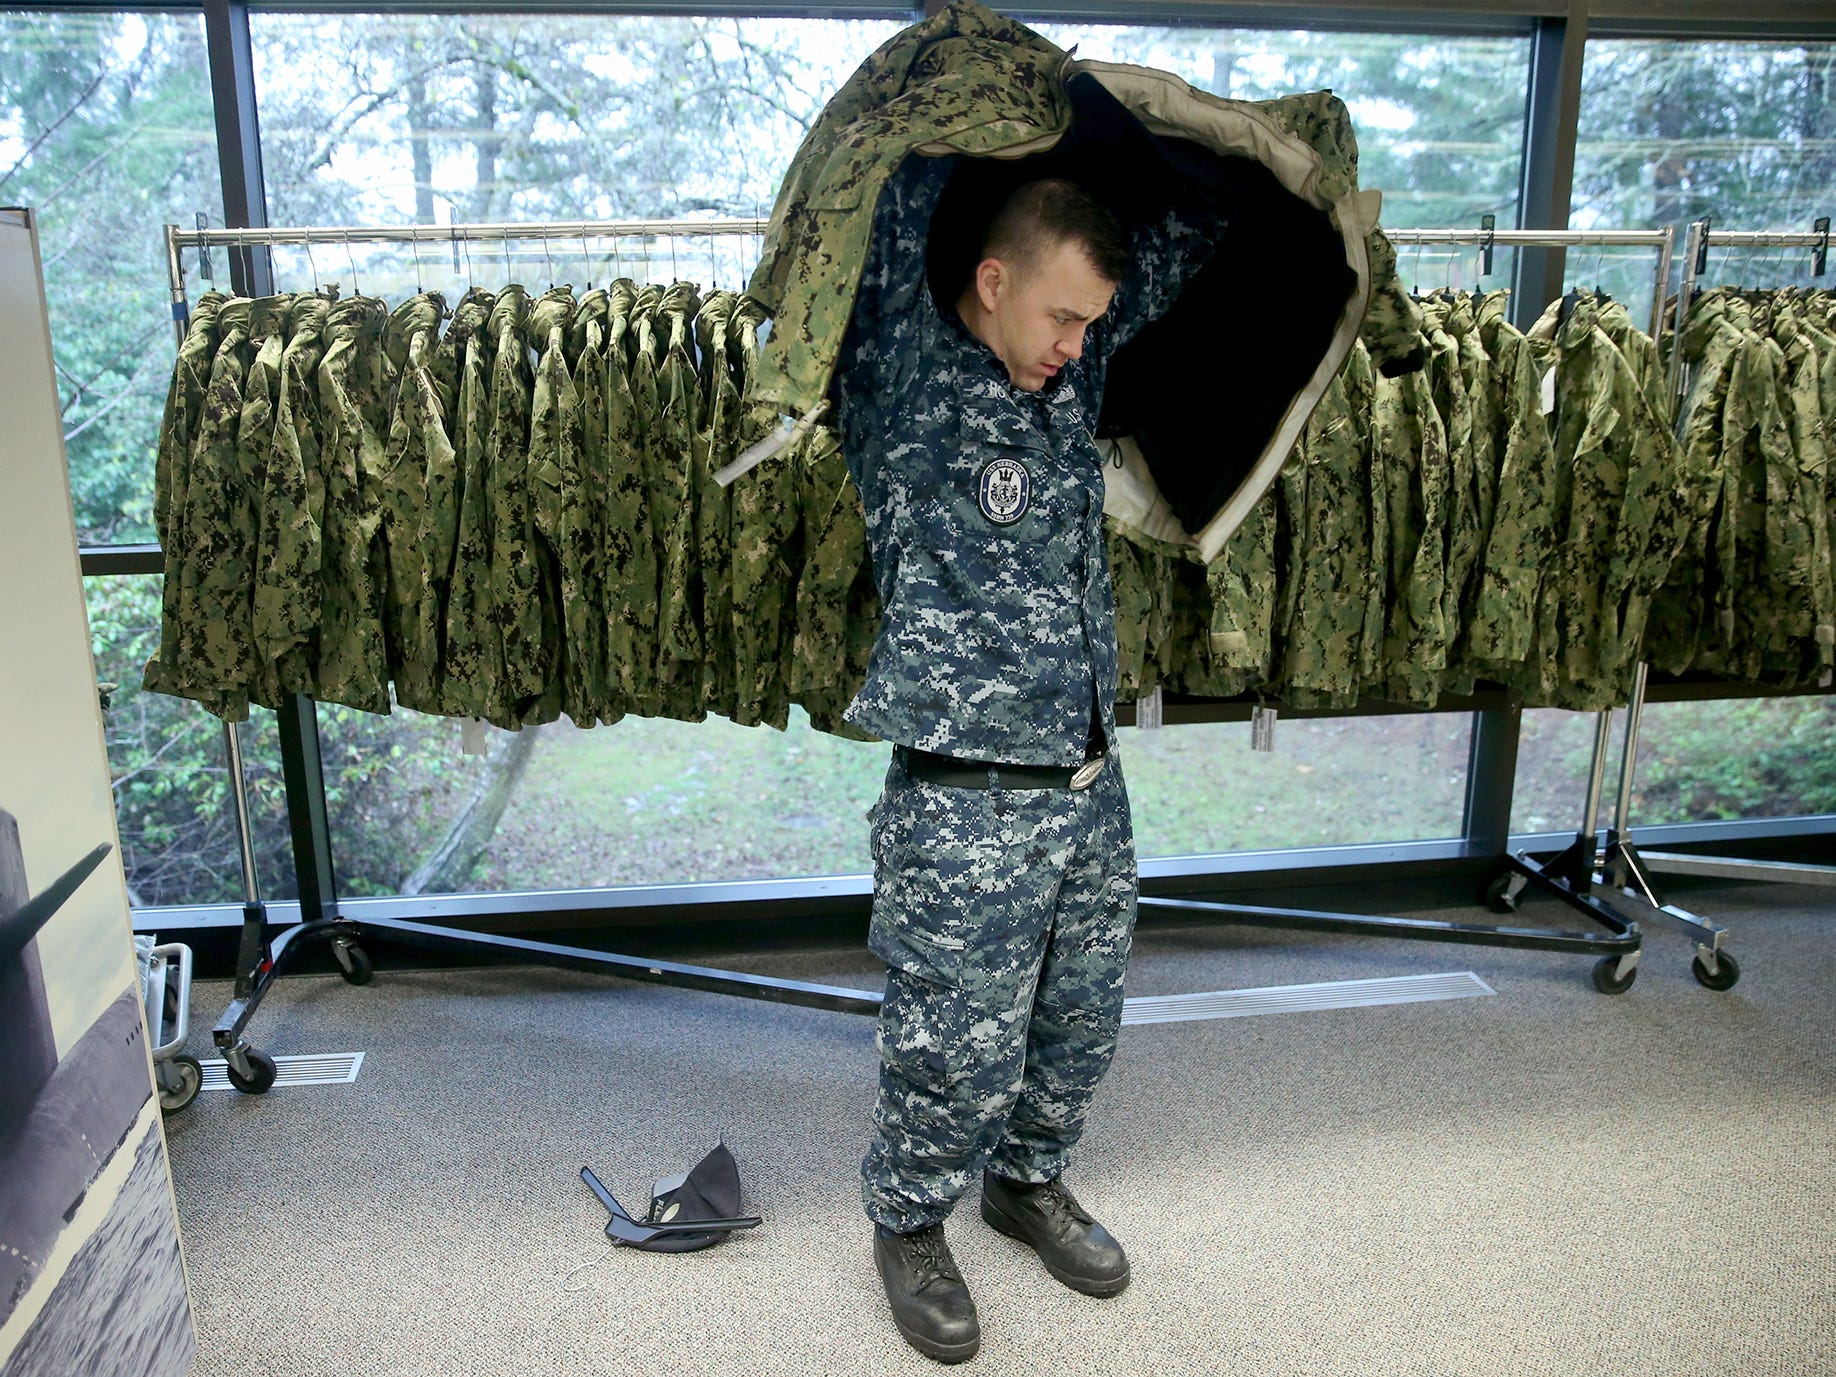 U.S. Navy sailor TM 2 Mason Holmes tries on a new green camouflage coat at the NEX on Naval Base Kitsap . Bangor. The Navy is changing from the blue camouflage to the green.